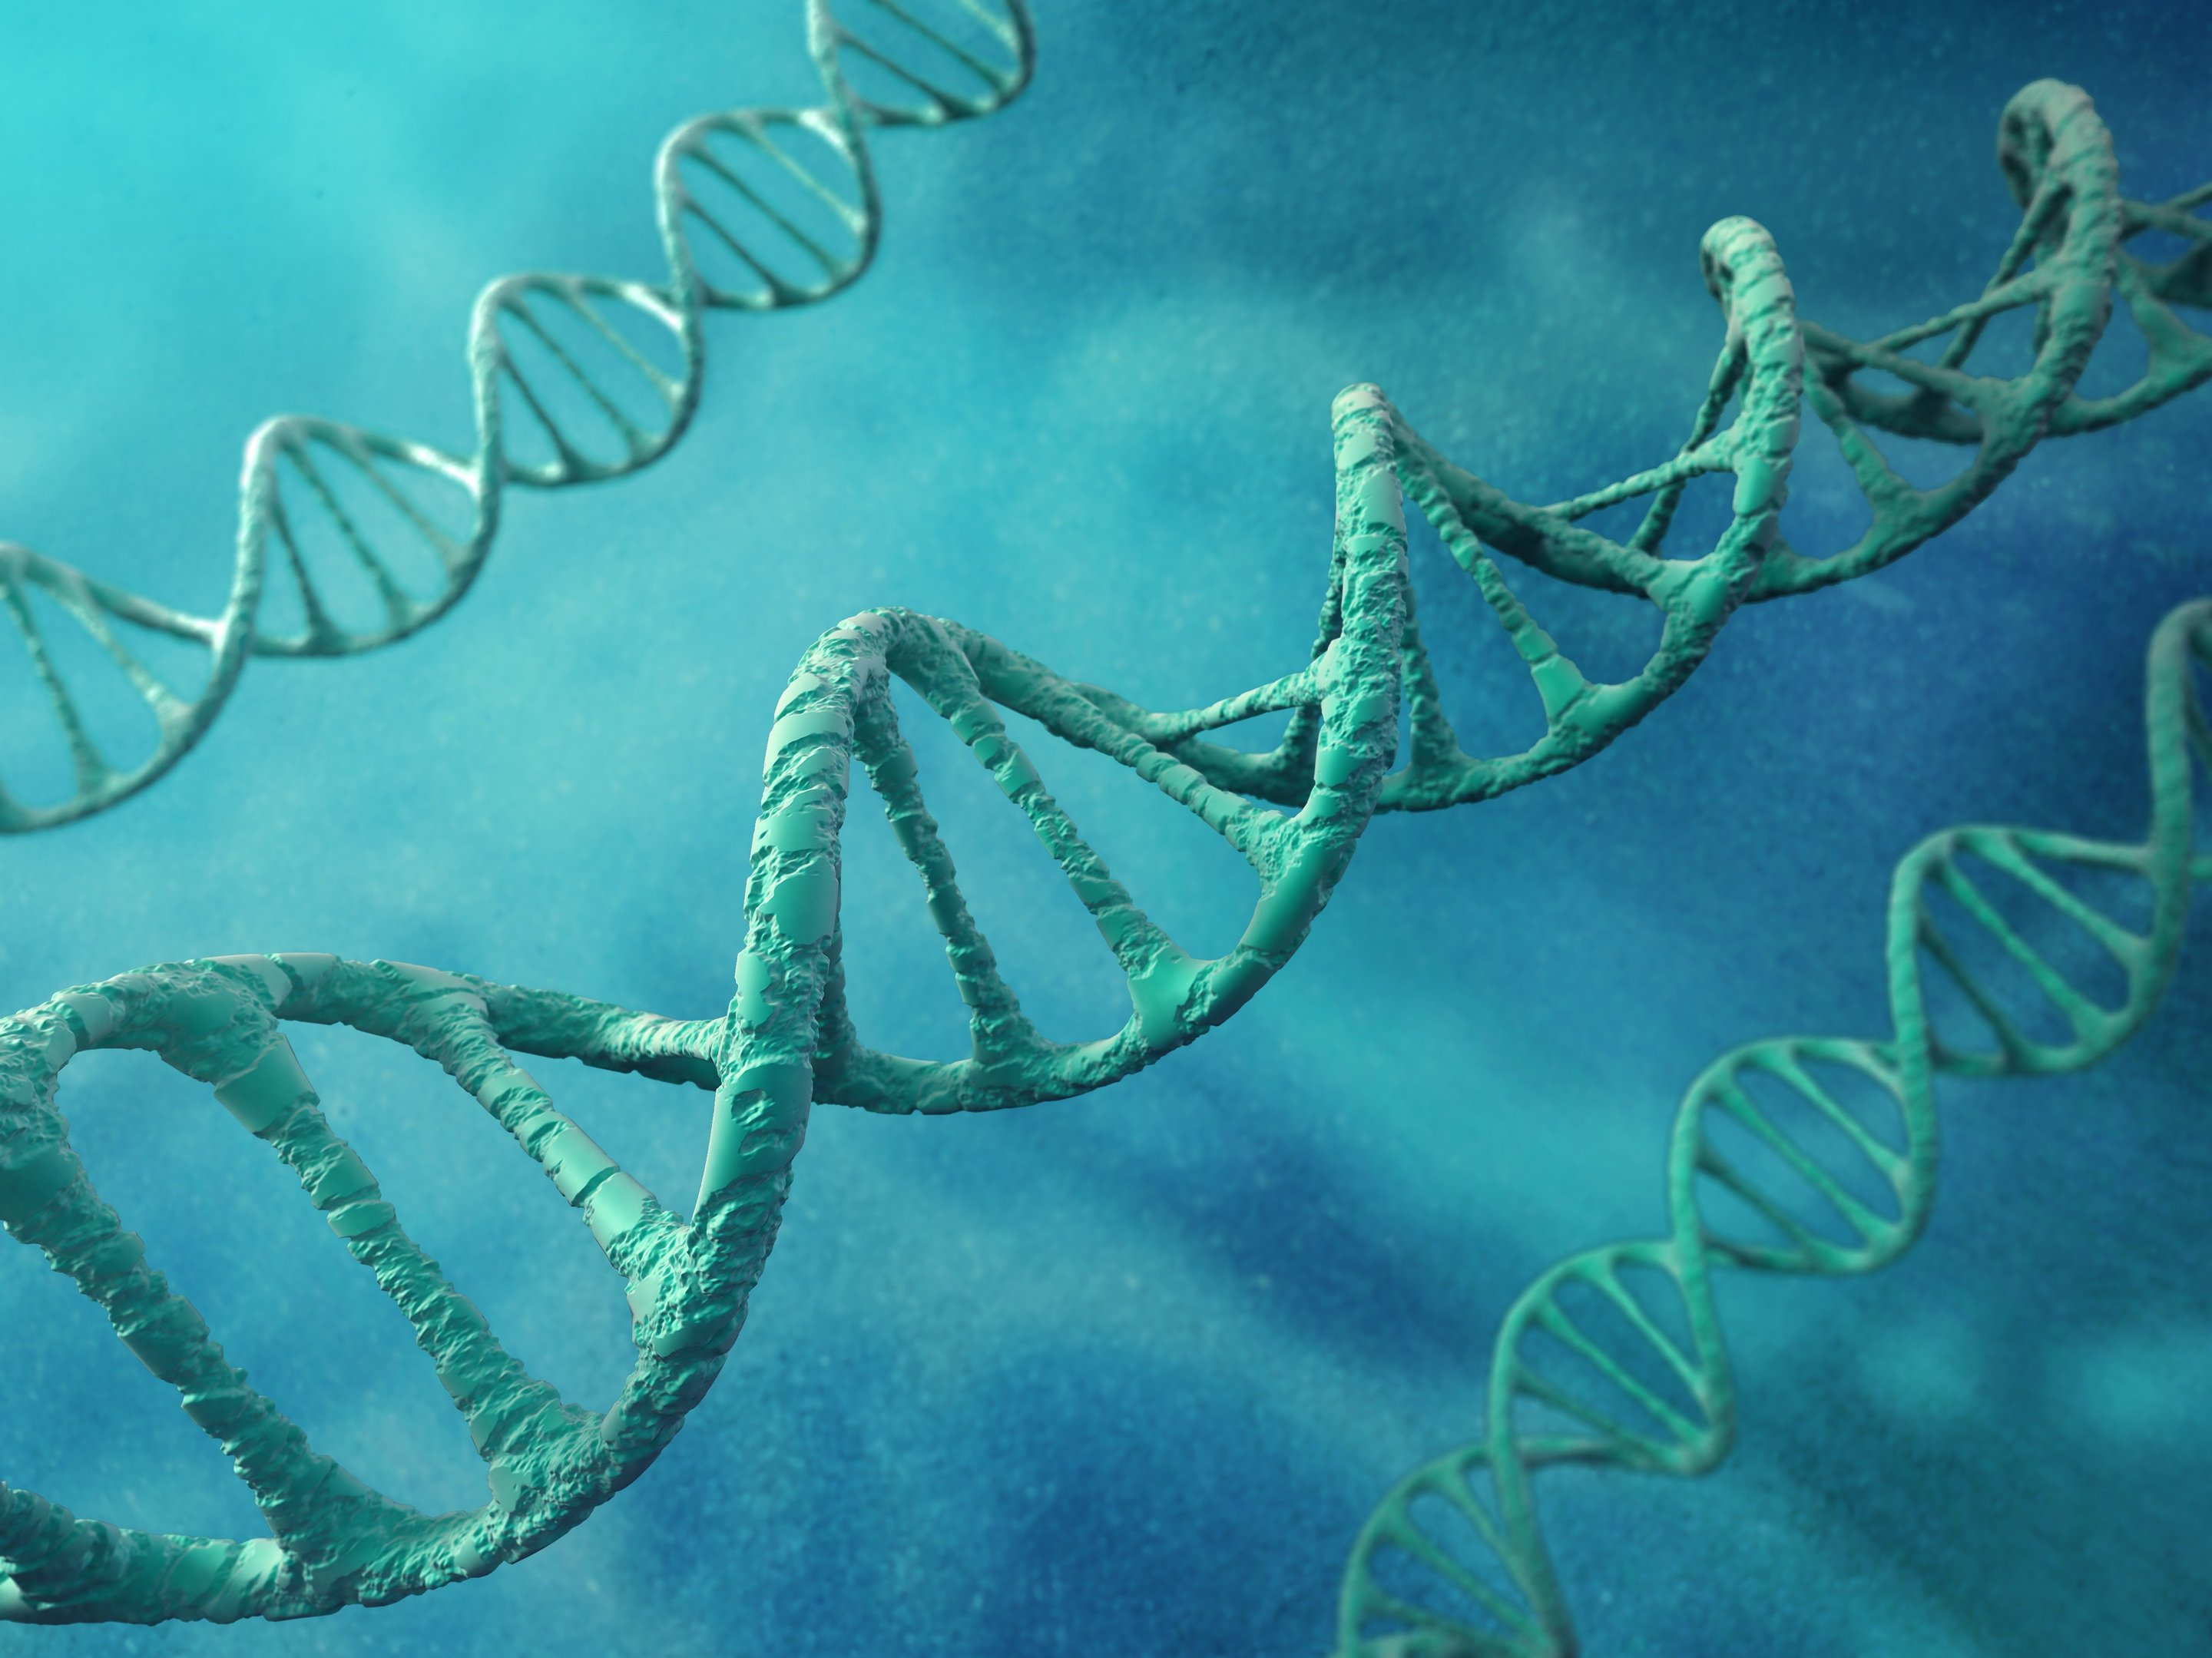 Researchers build dna replication in a model synthetic cell malvernweather Choice Image